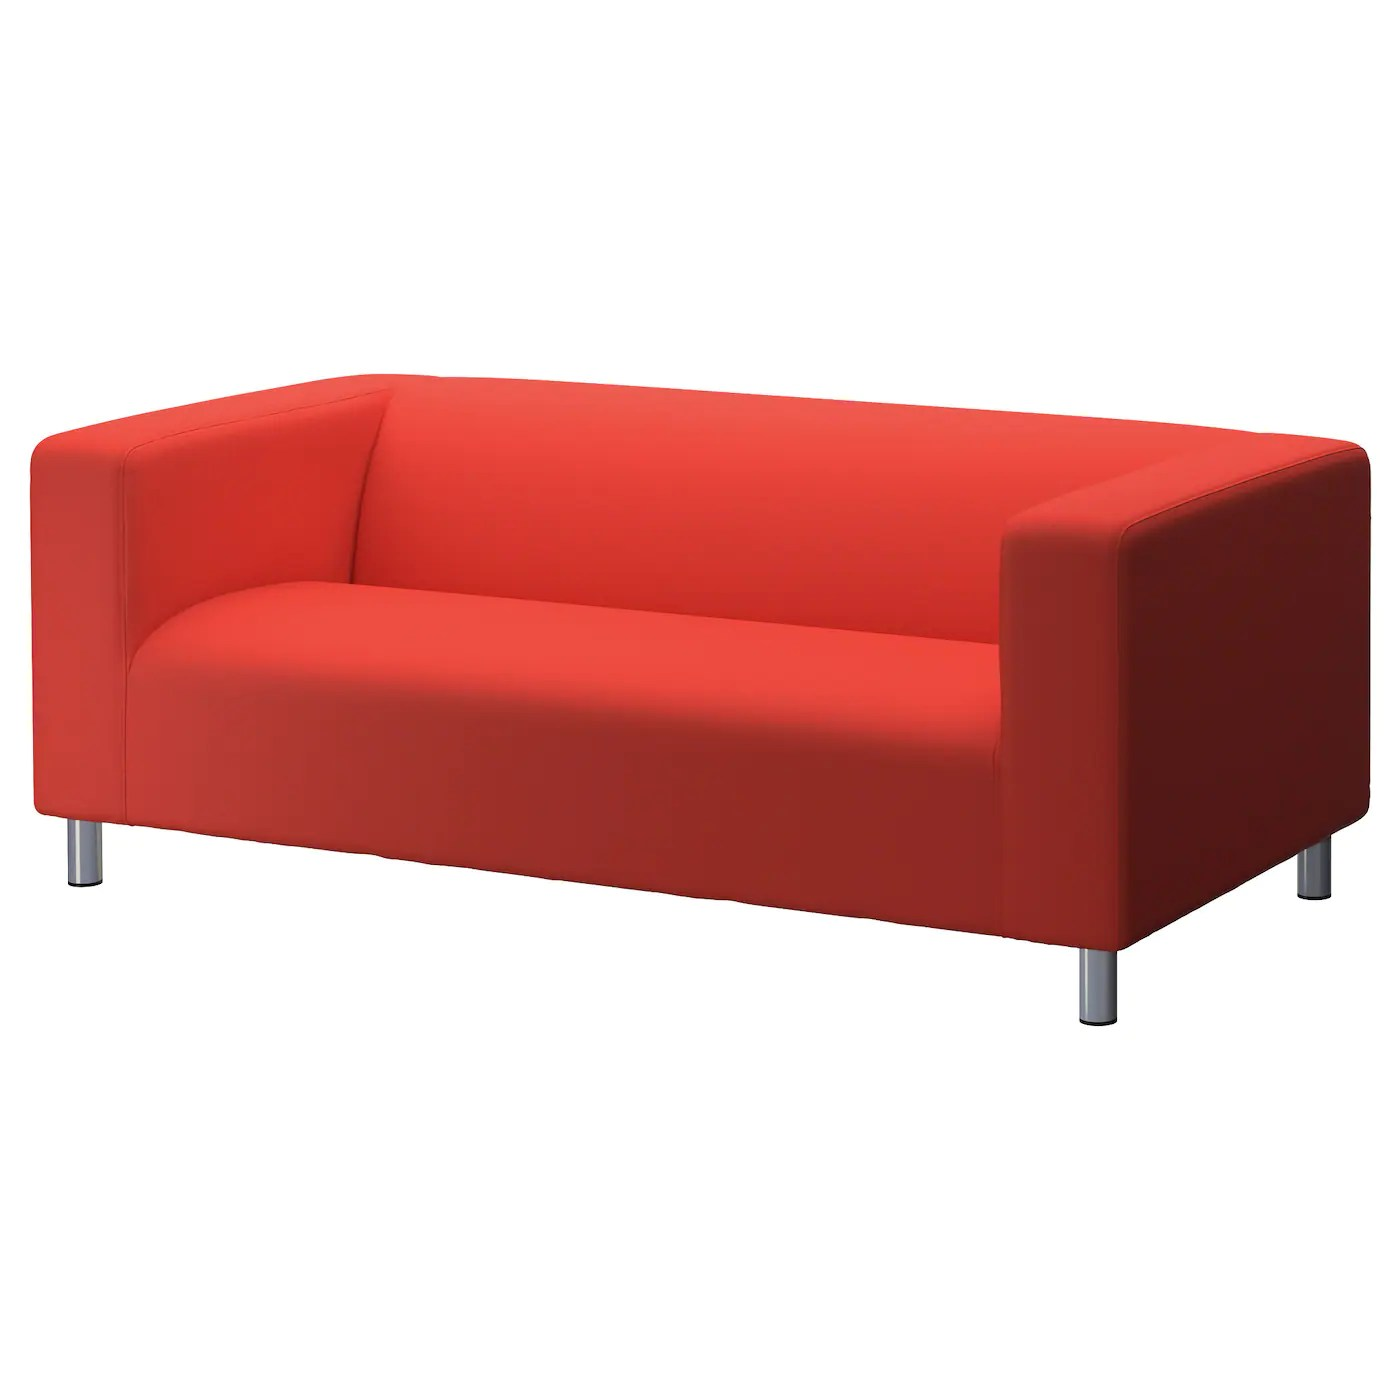 Ikea Klippan Sofa Maße Klippan Two Seat Sofa Flackarp Red Orange Ikea